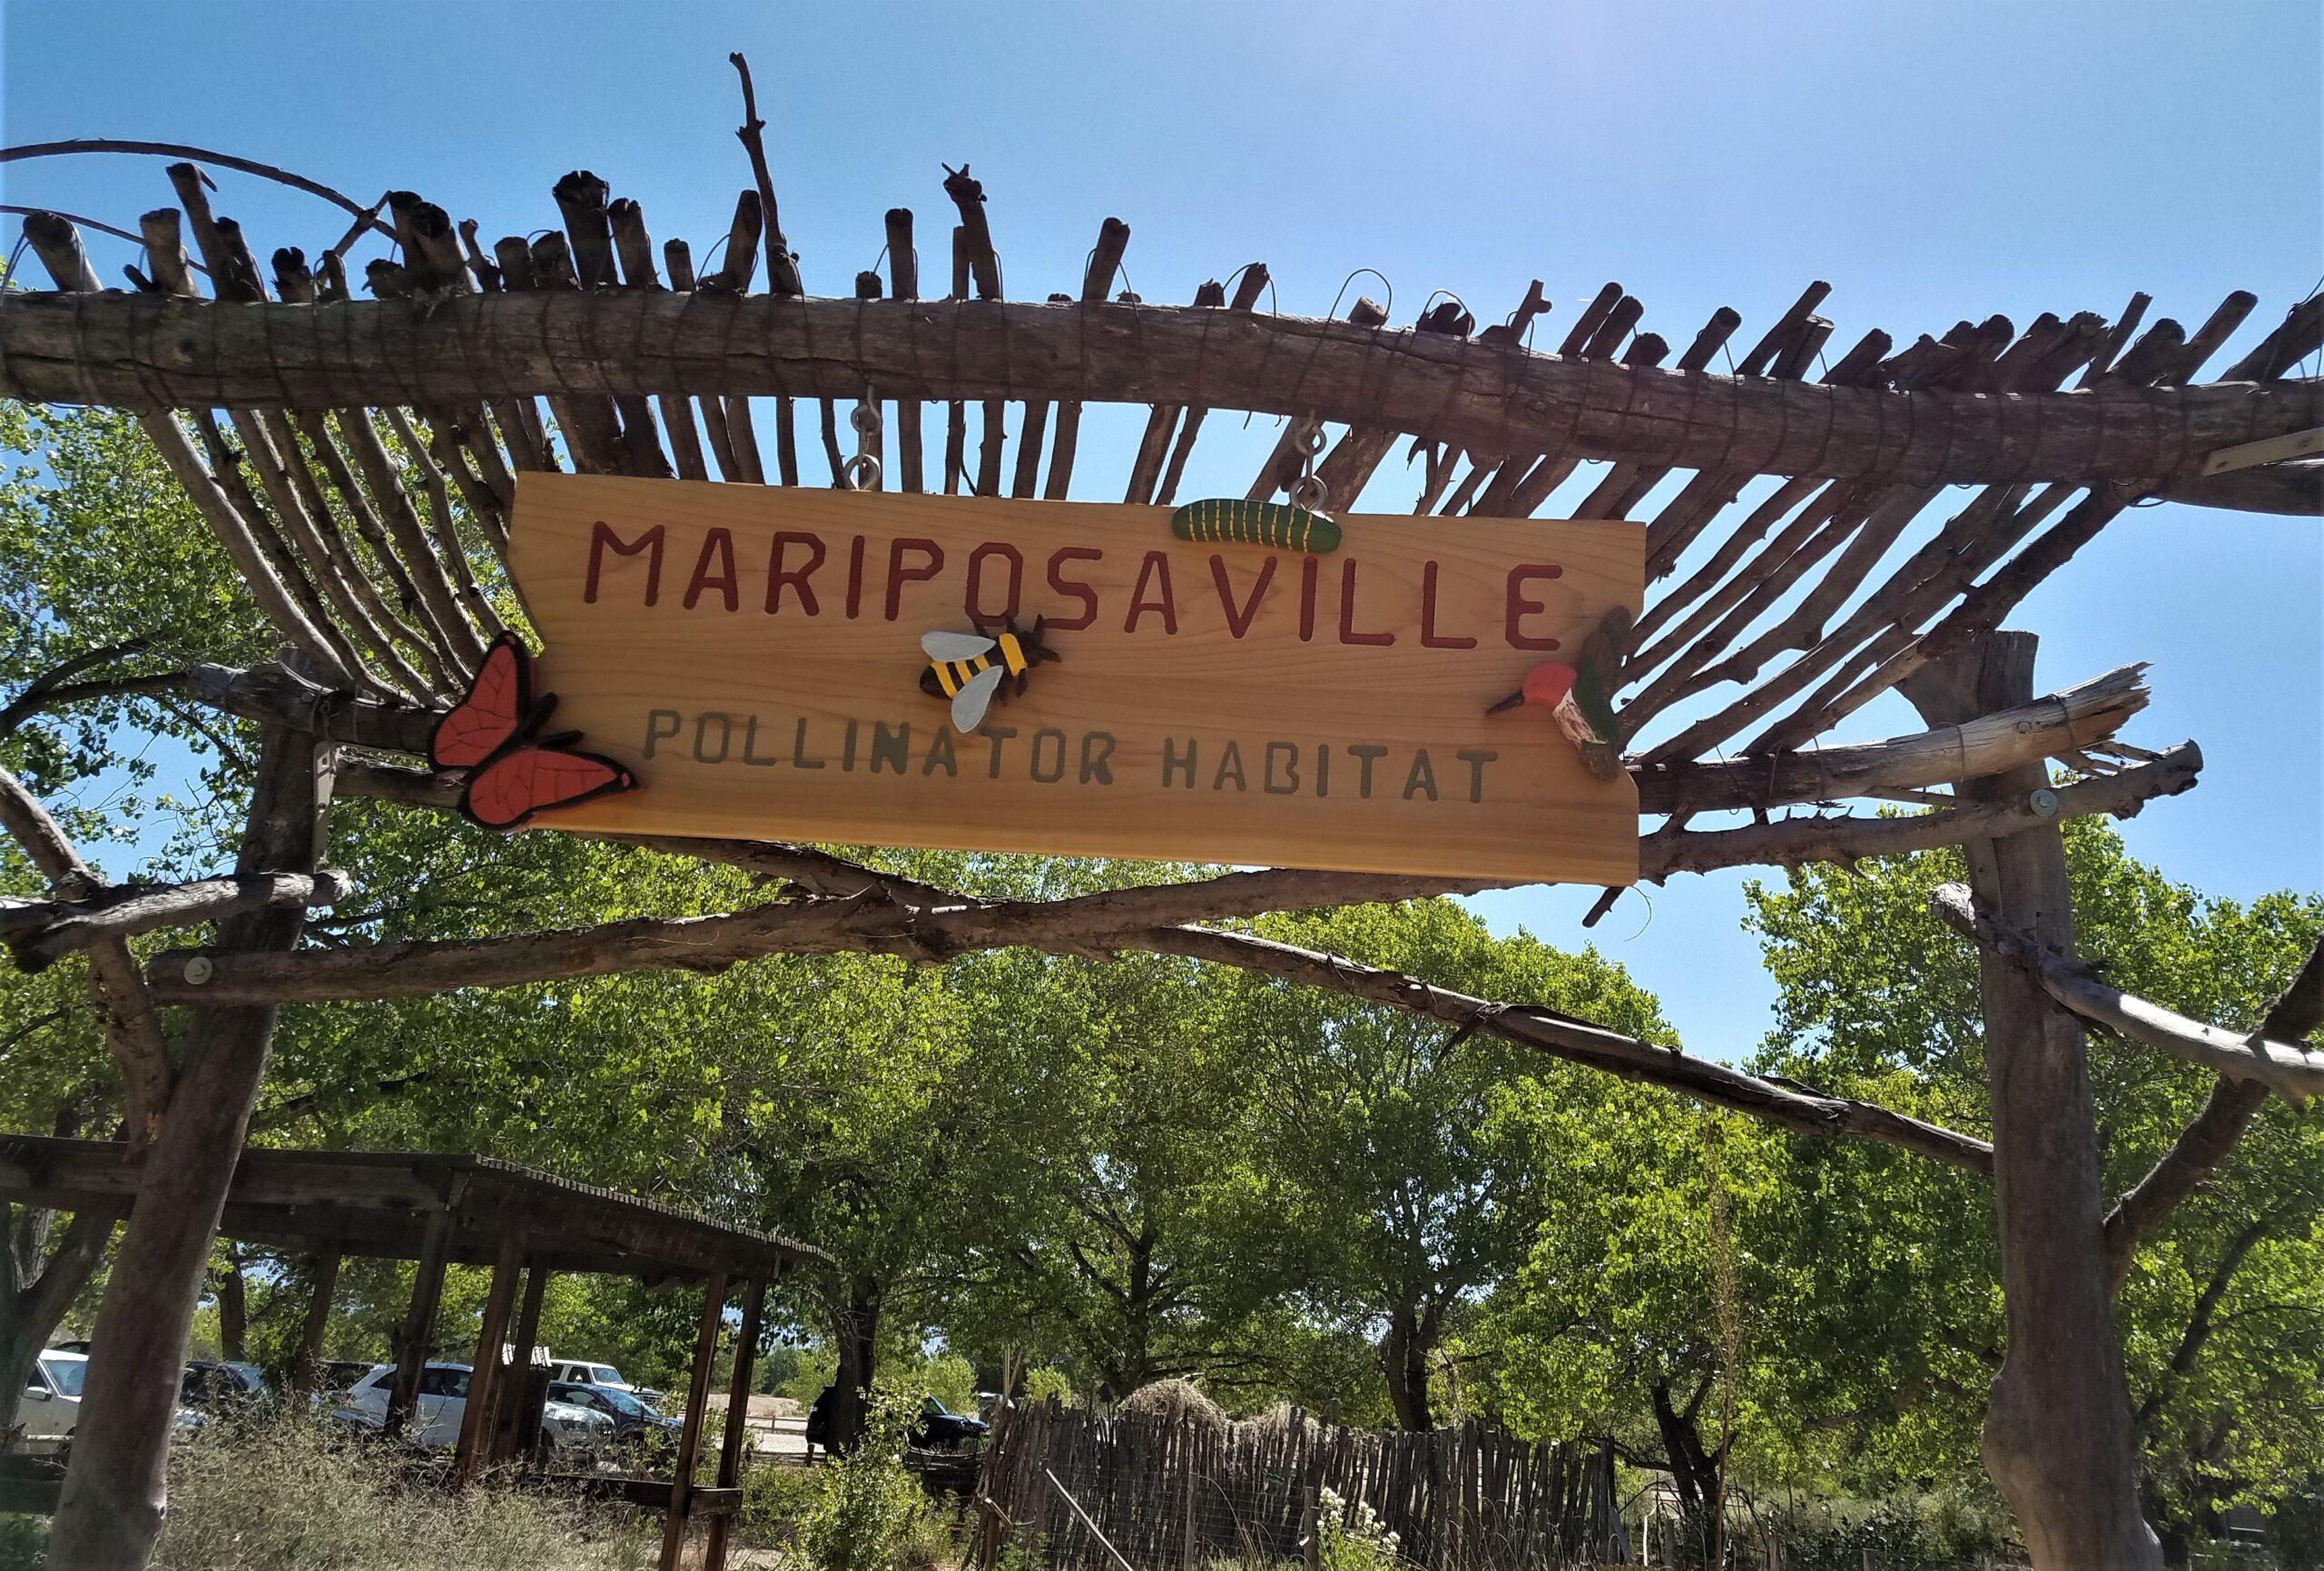 Entrance to Mariposaville garden.